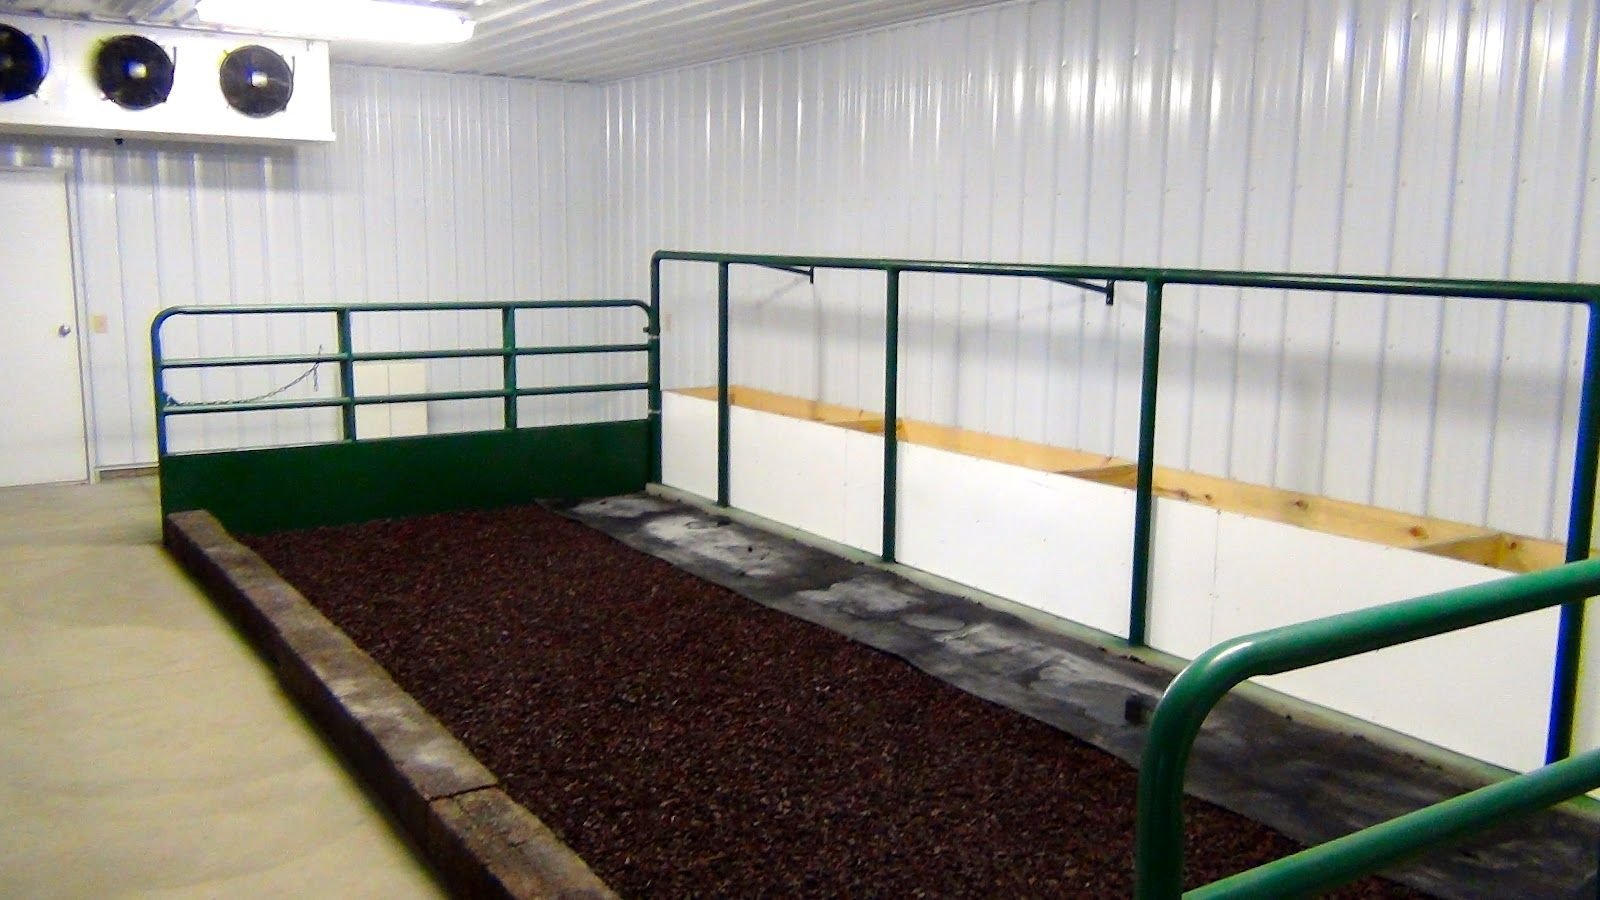 Cool Room Layouts show cattle cool room designs |  sires, inc.: first stop in